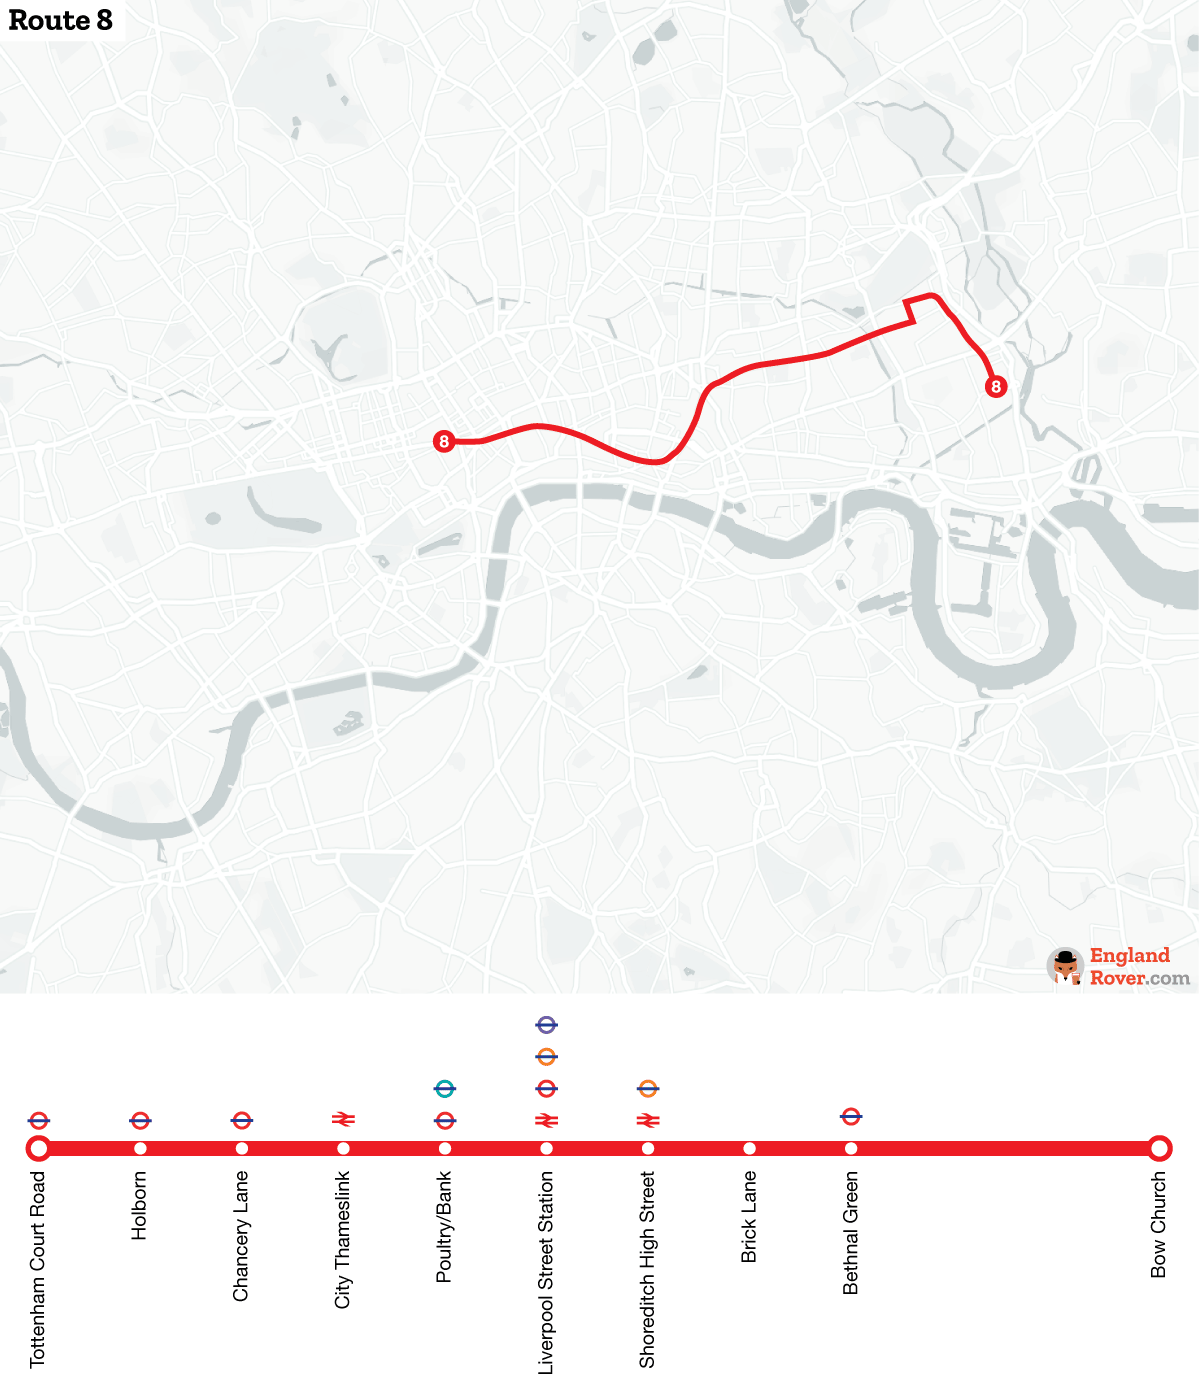 Map of London bus route 8